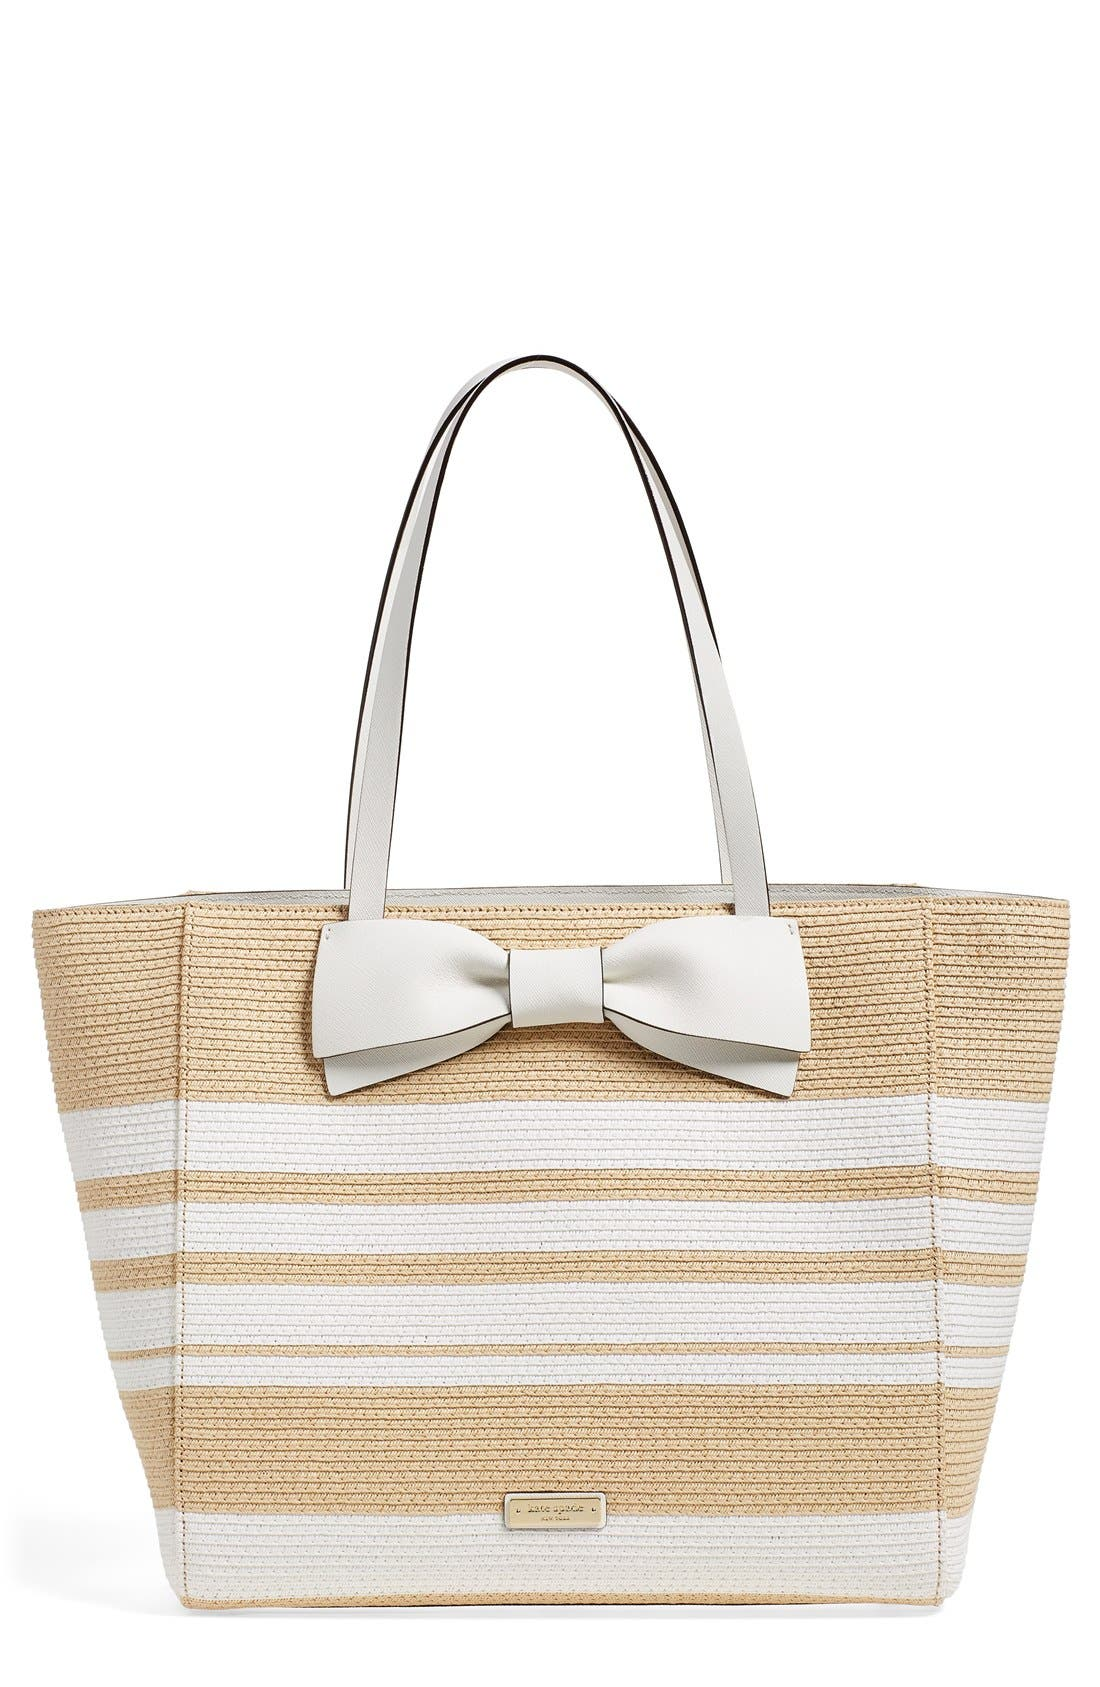 Alternate Image 1 Selected - kate spade new york 'clement street - blair' woven straw tote